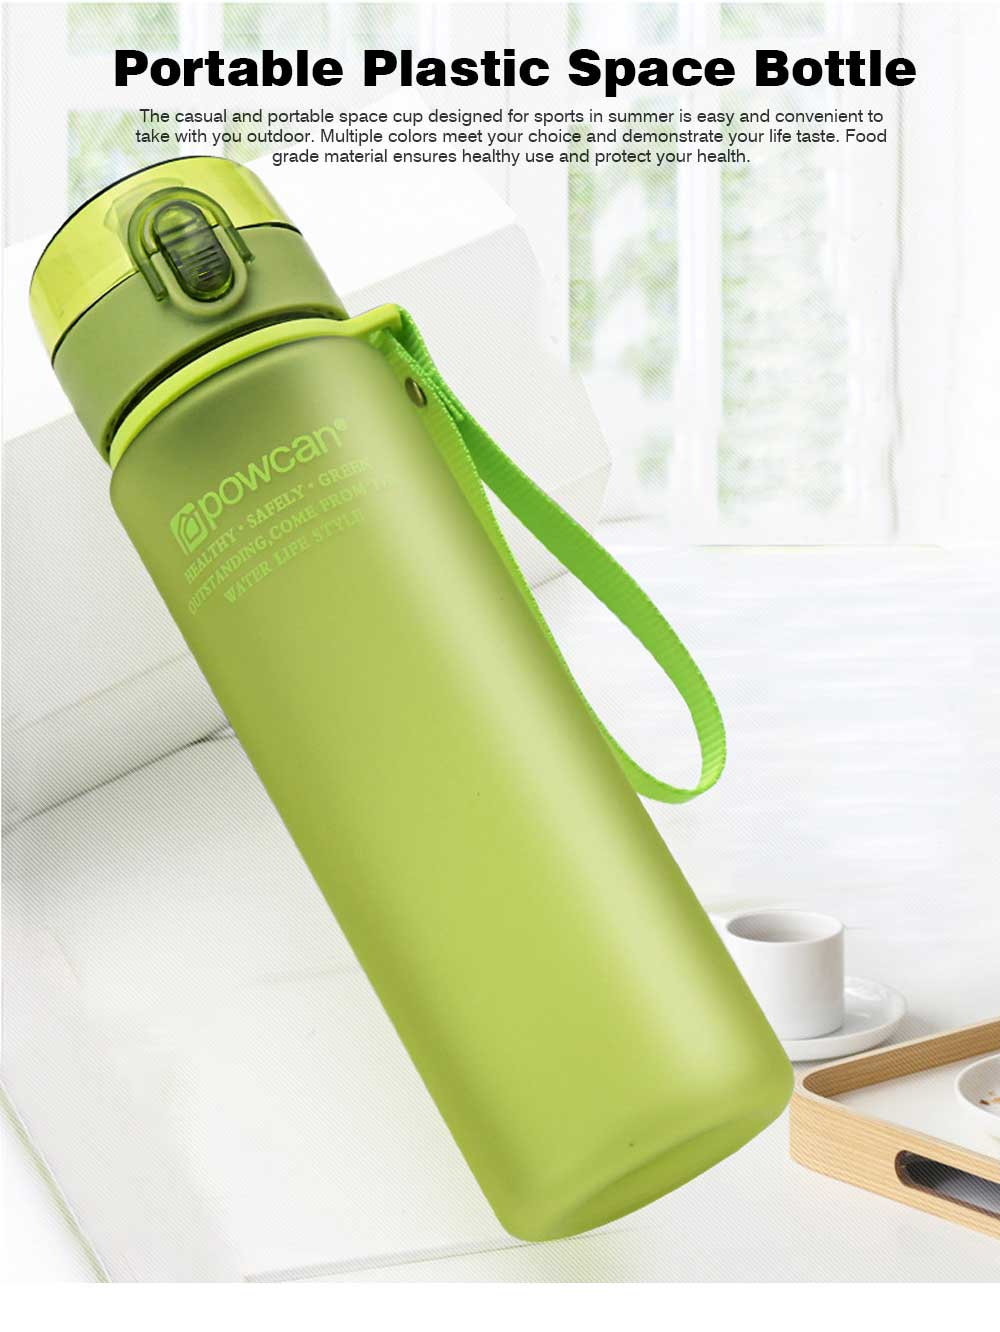 Portable Plastic Space Bottle of Sports Style for Summer, Creative Powcan Cup Children Cup for Students' Use PC Cups 0